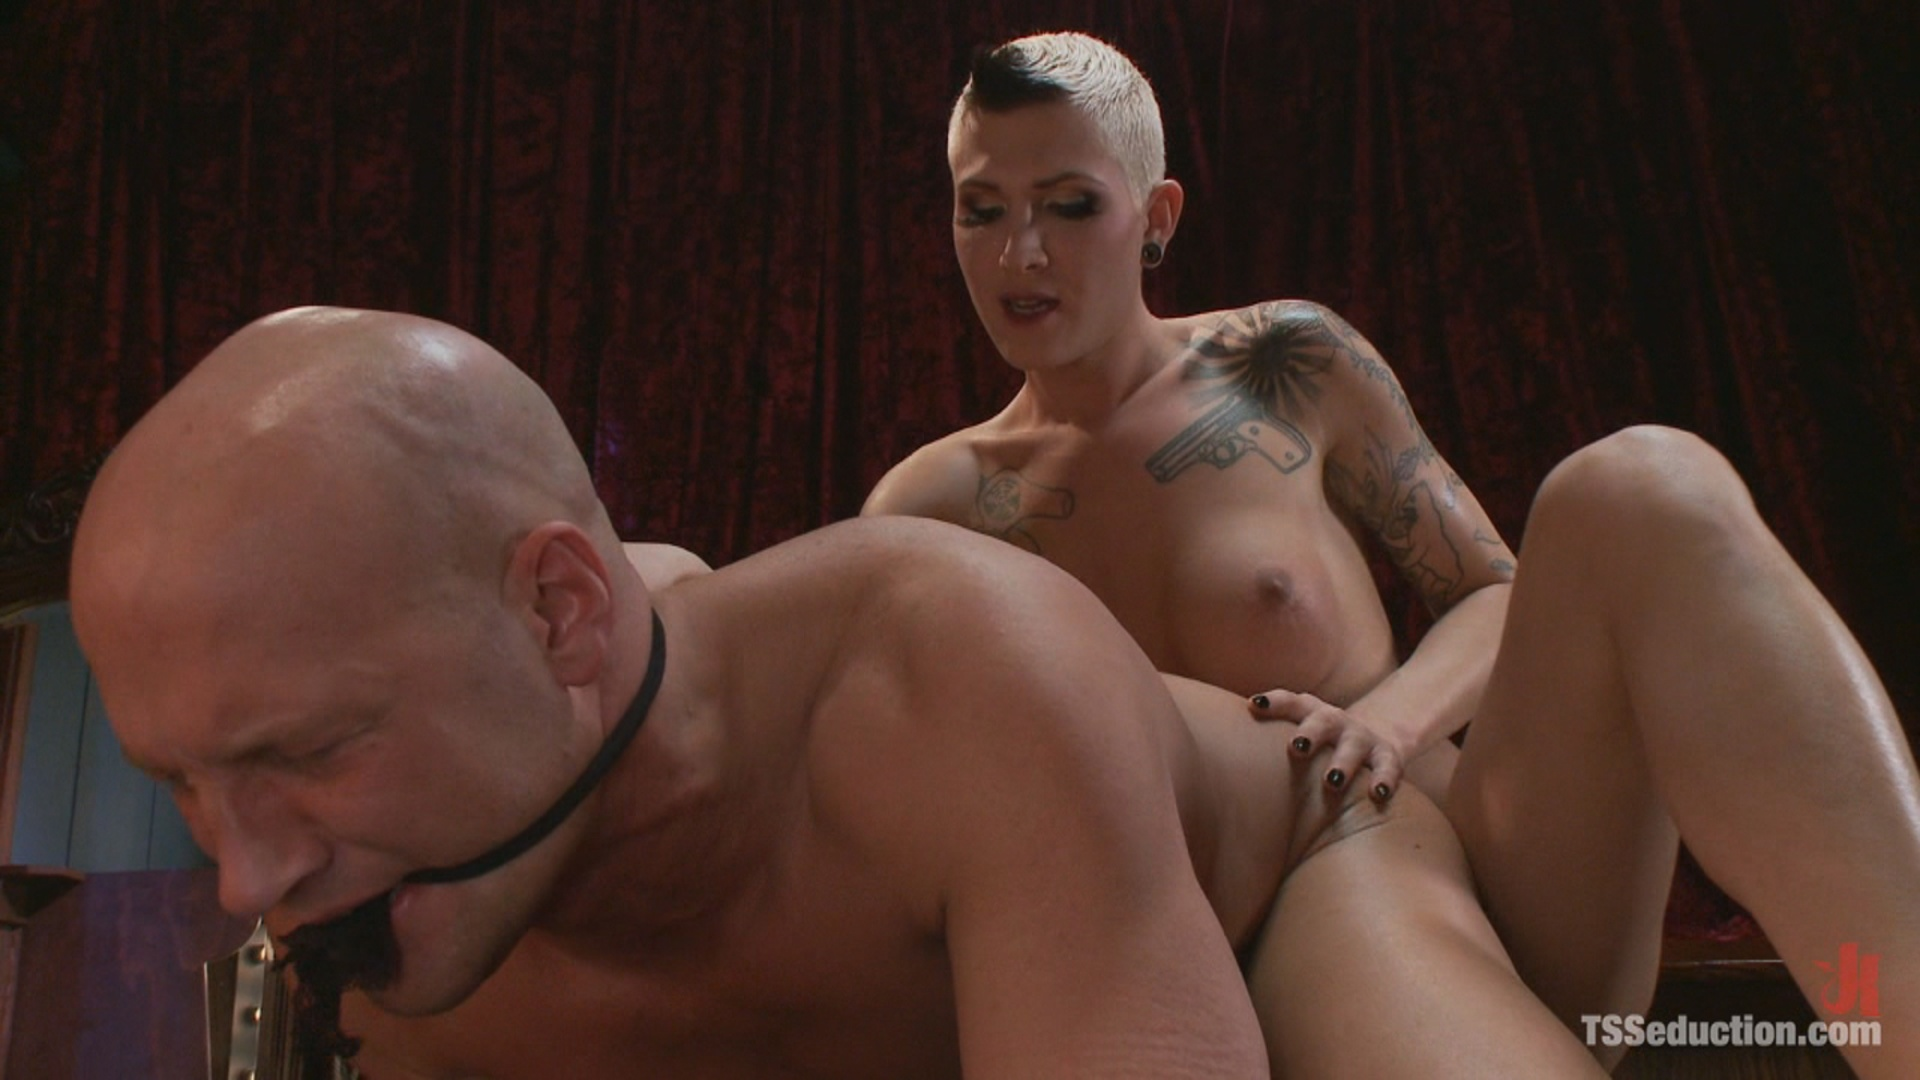 TS Seduction:  Cabaret:  TS Danni Daniels Owns Christian / Danni Daniels keeps her toys locked in her dressing room. Tonight she wants to play with the tall, muscular bouncer who has been eying her ever since she started working at The Cabaret.